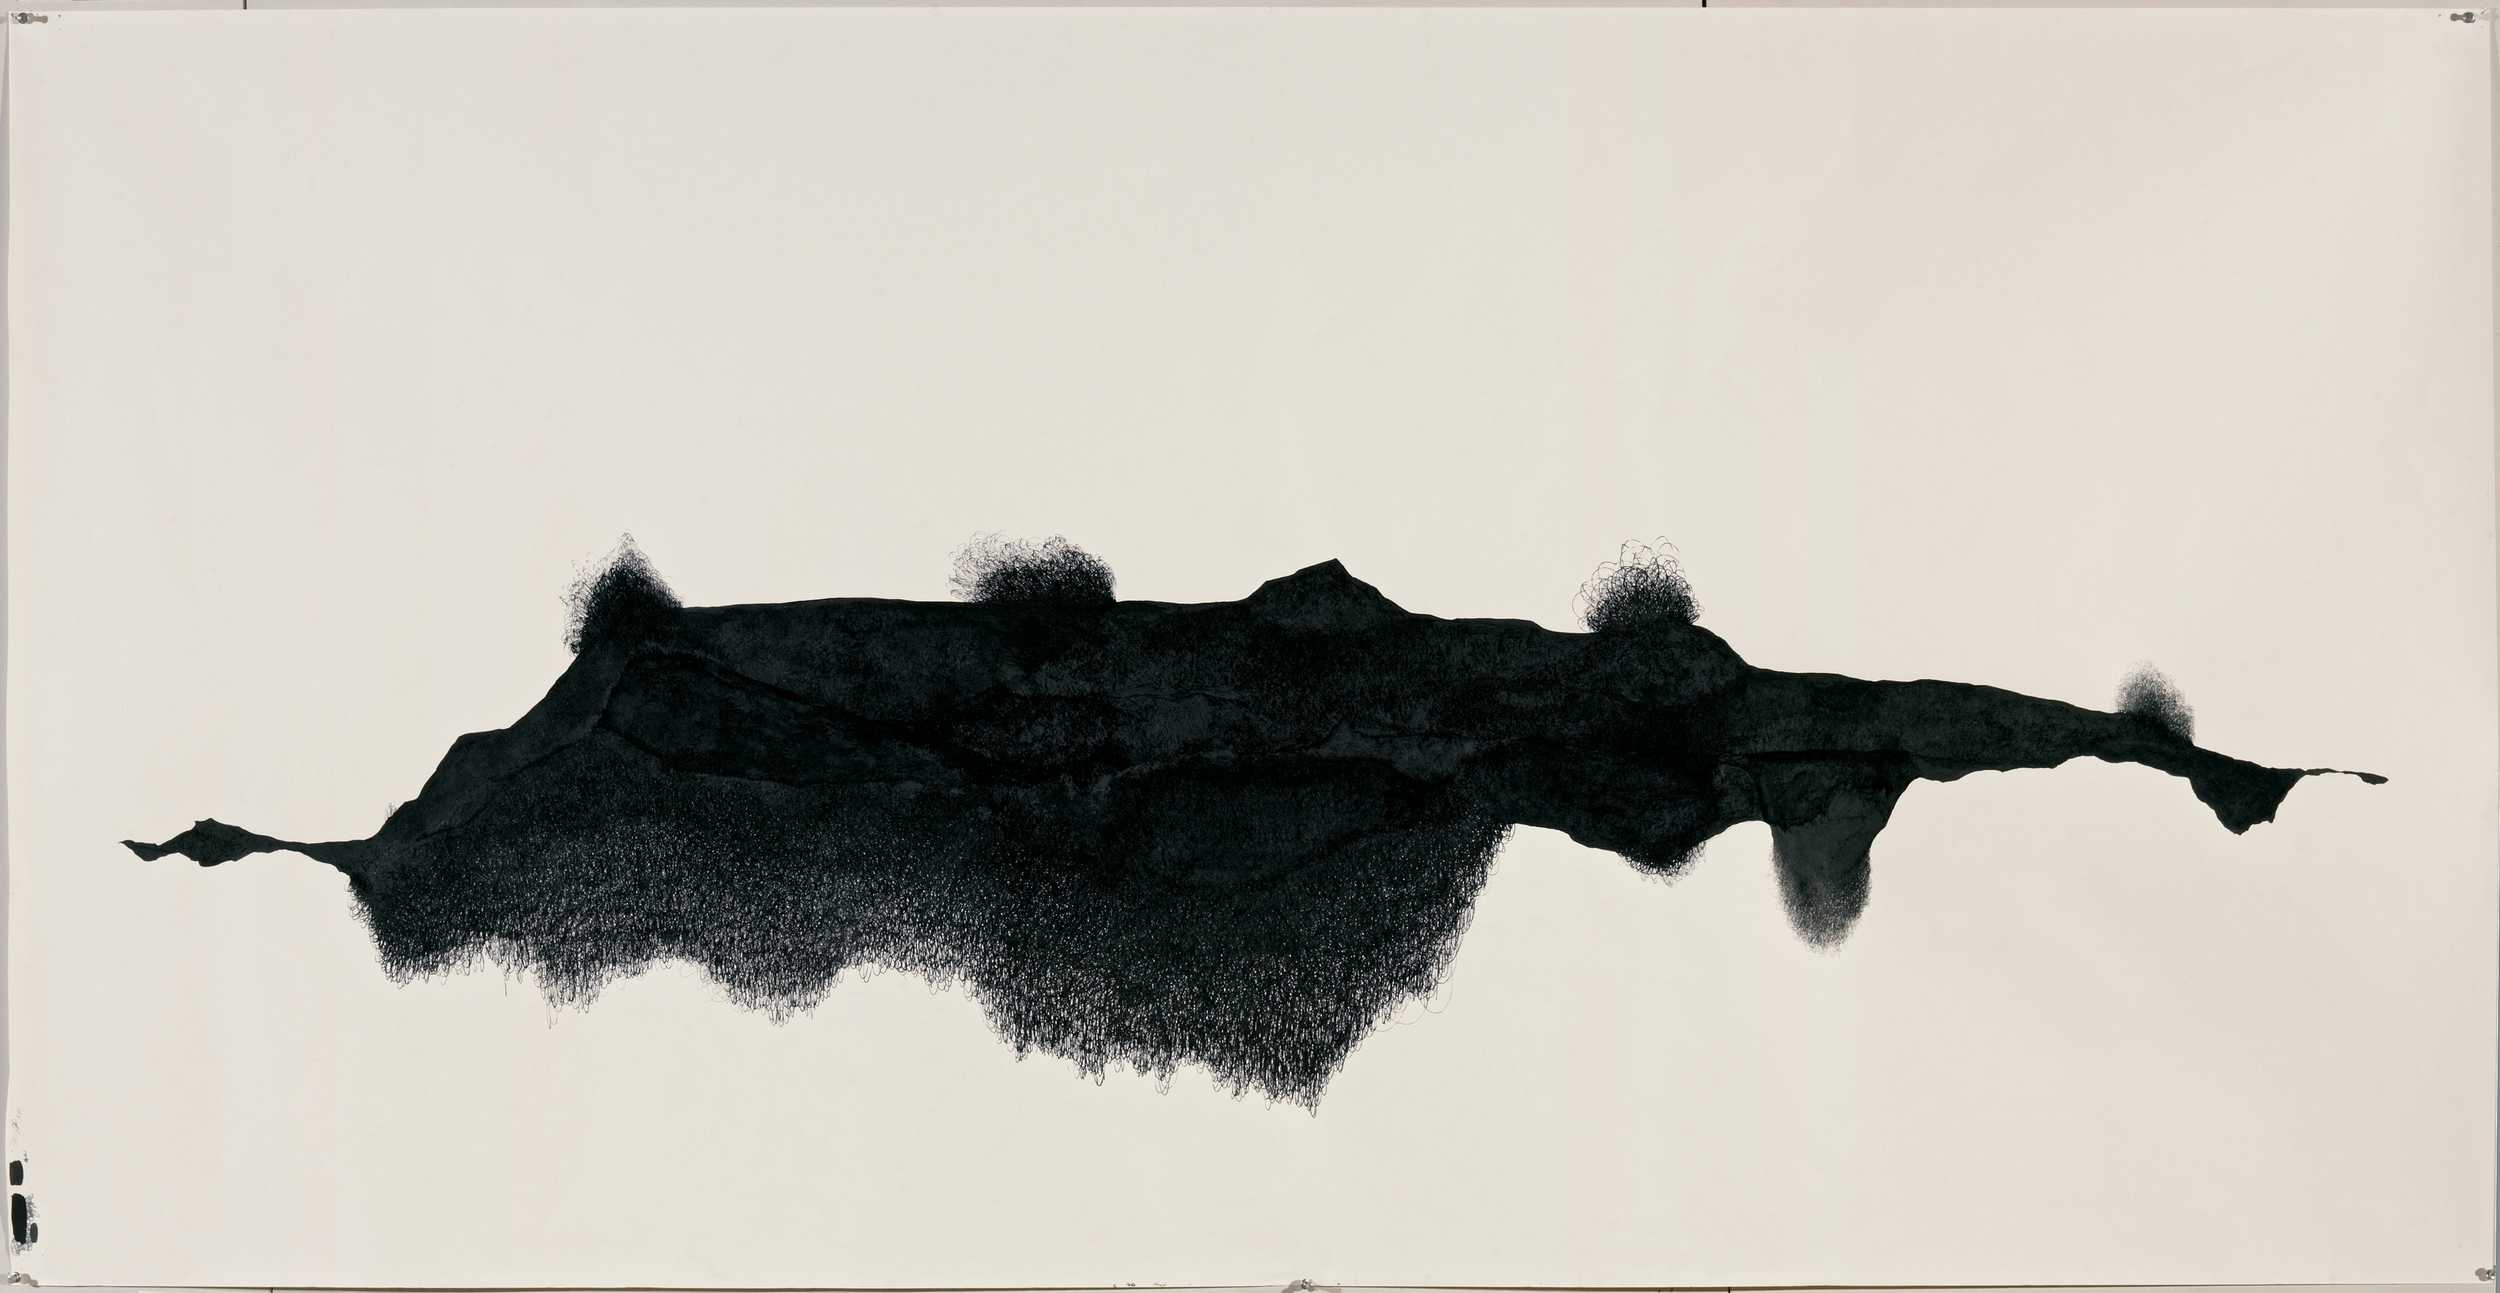 Wedge, 2006-07, 42 x 82 in.